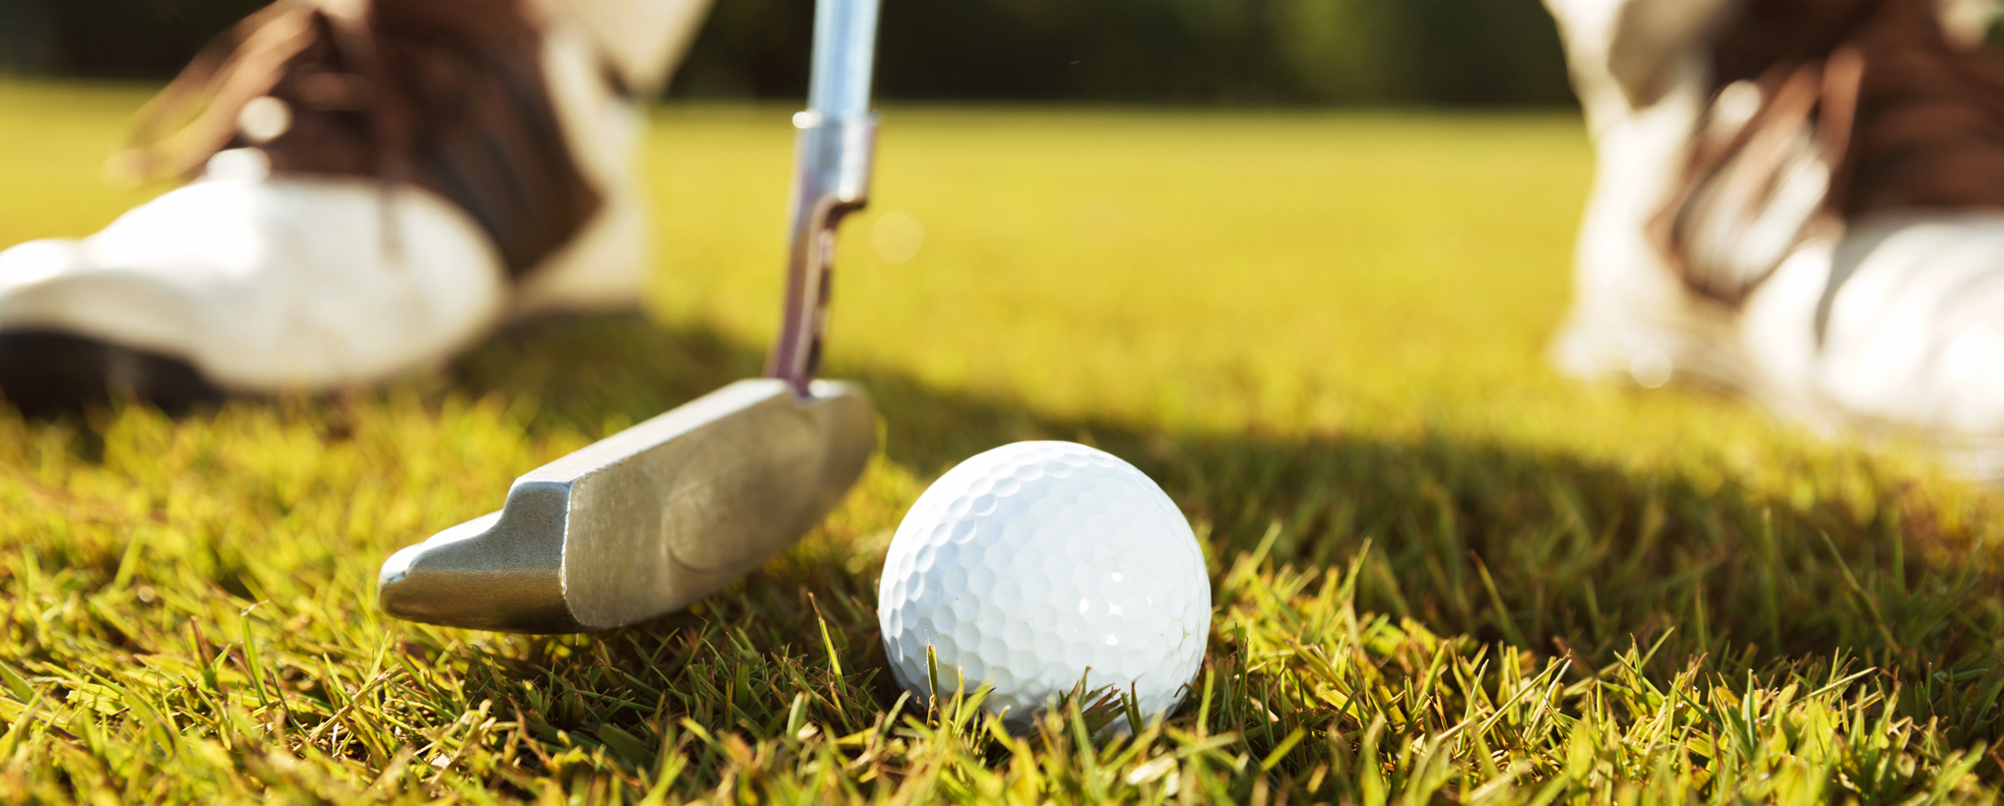 Stock photo of golf club and gold ball